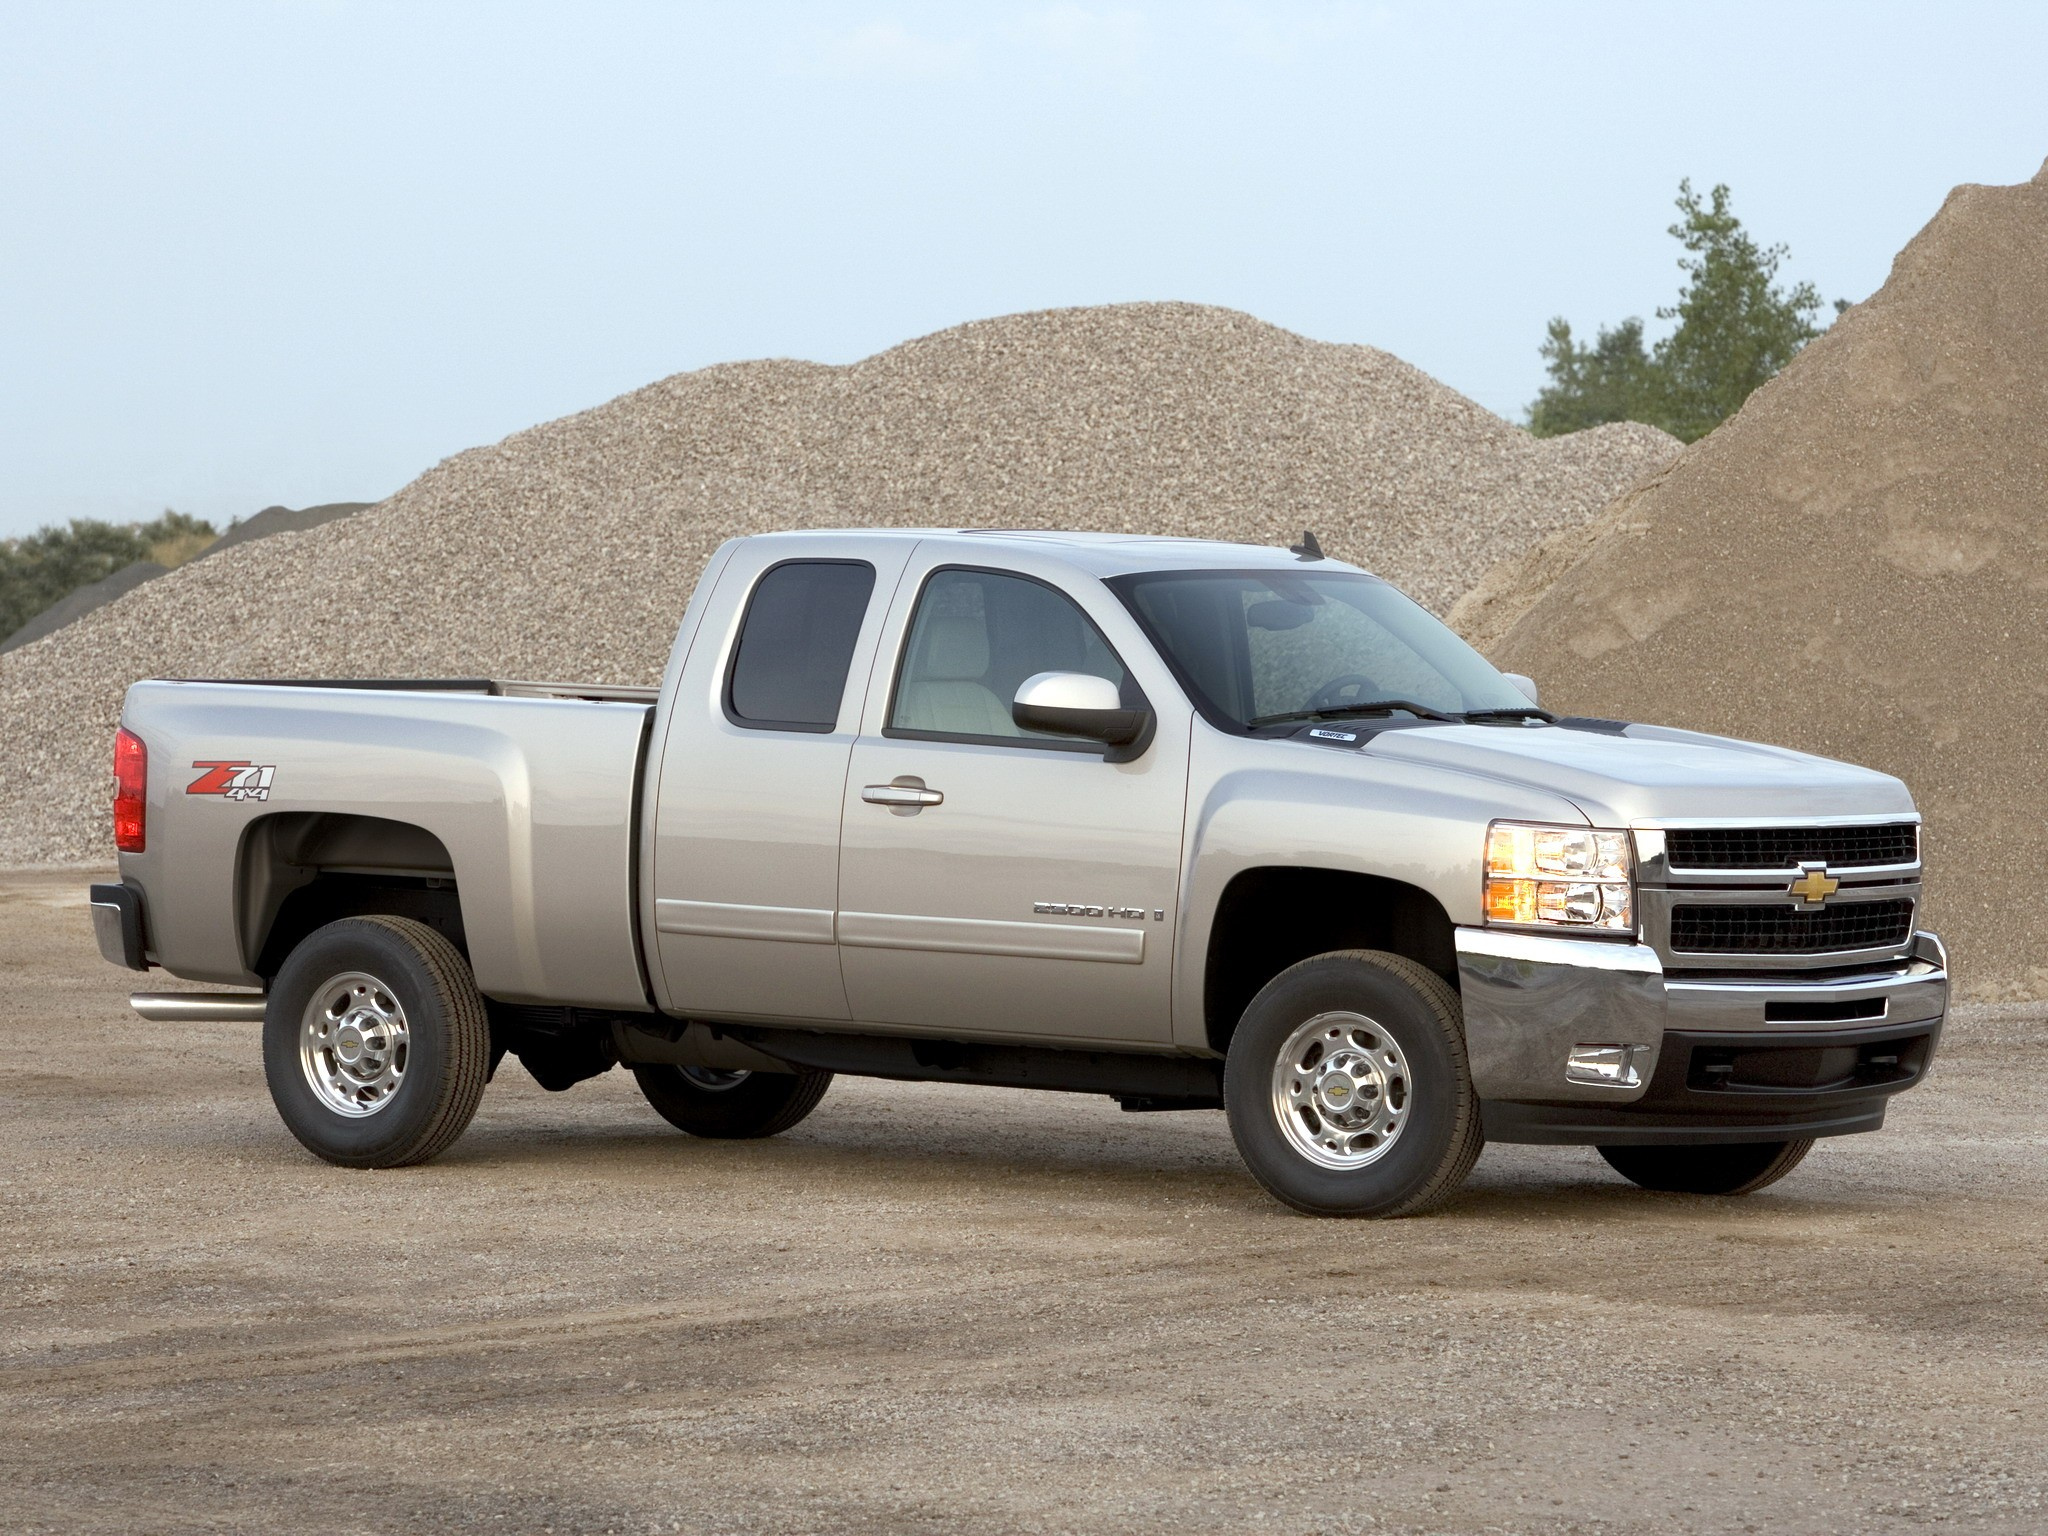 CHEVROLET Silverado 2500HD Extended Cab specs & photos - 2008, 2009, 2010, 2011, 2012, 2013 ...